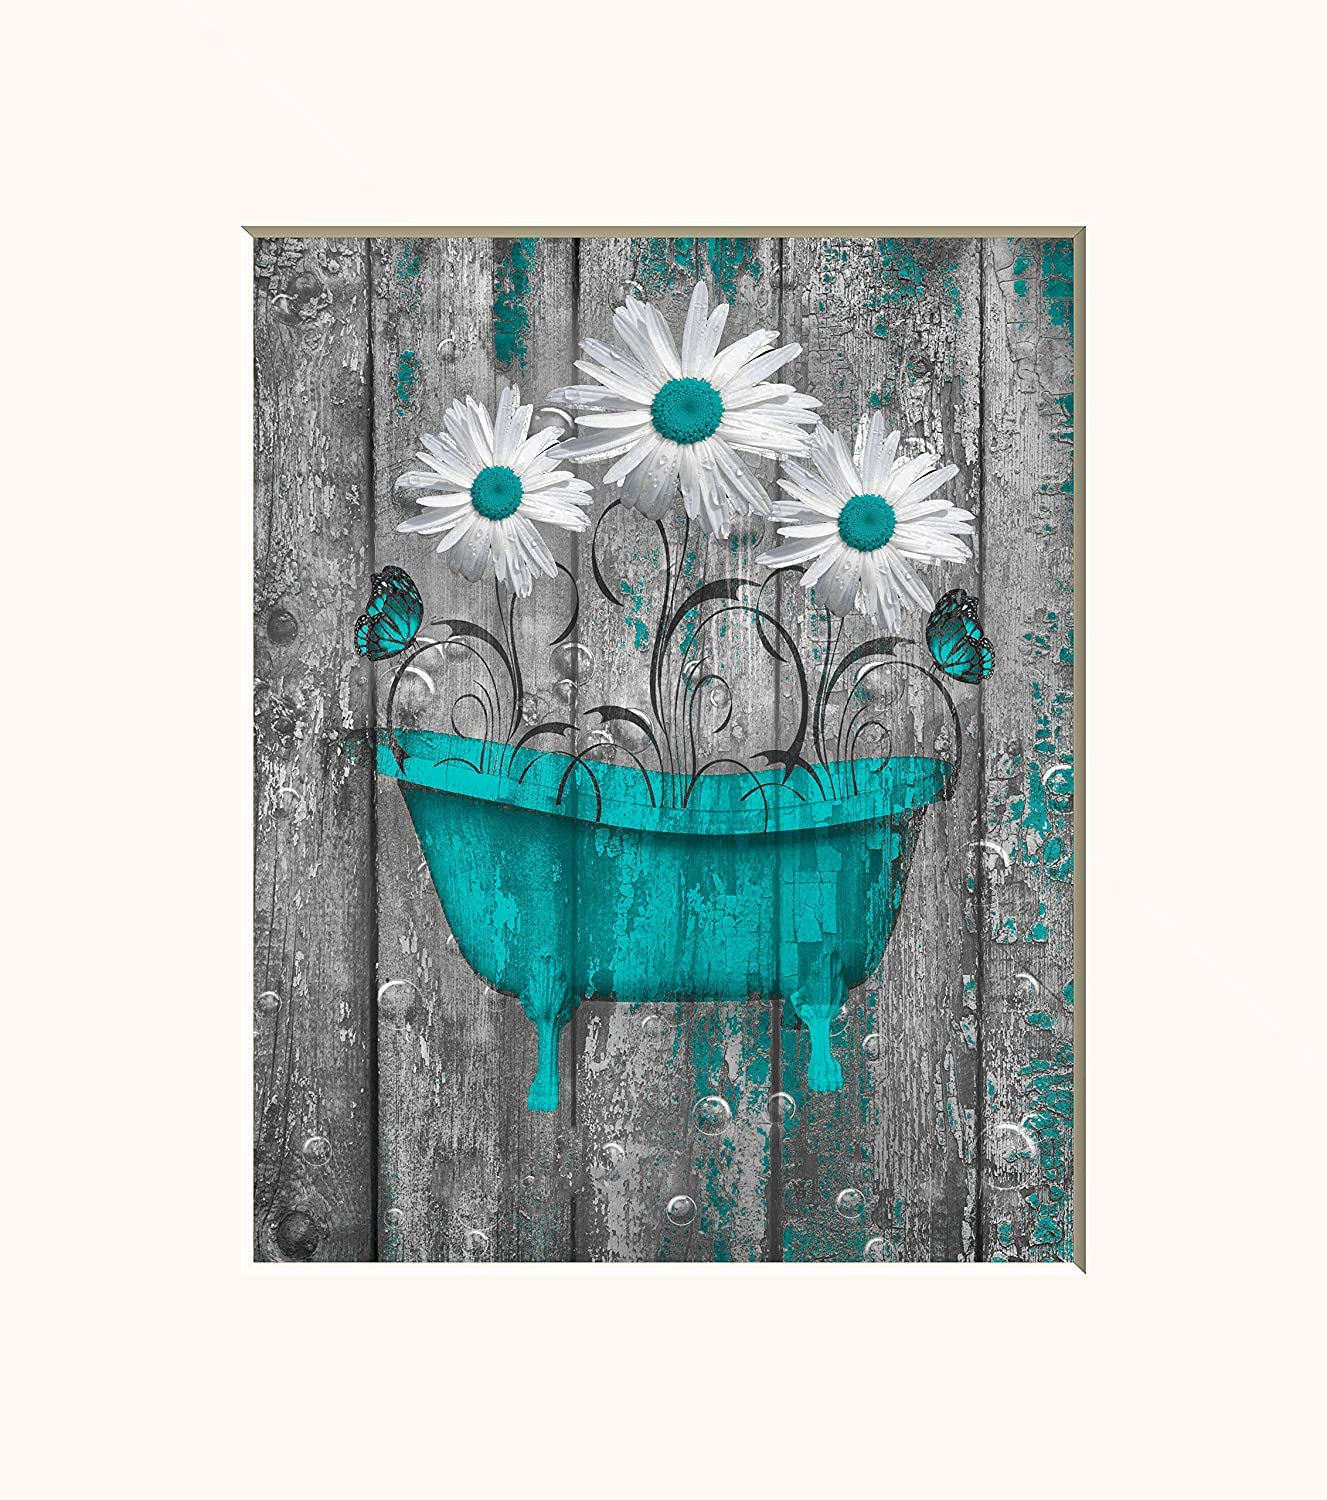 Coral Gray Floral Bathroom Wall Art *8x10 Inch Photo with 11x14 Inch White Mat *Goes Inside a 11x14 Inch Picture Frame*